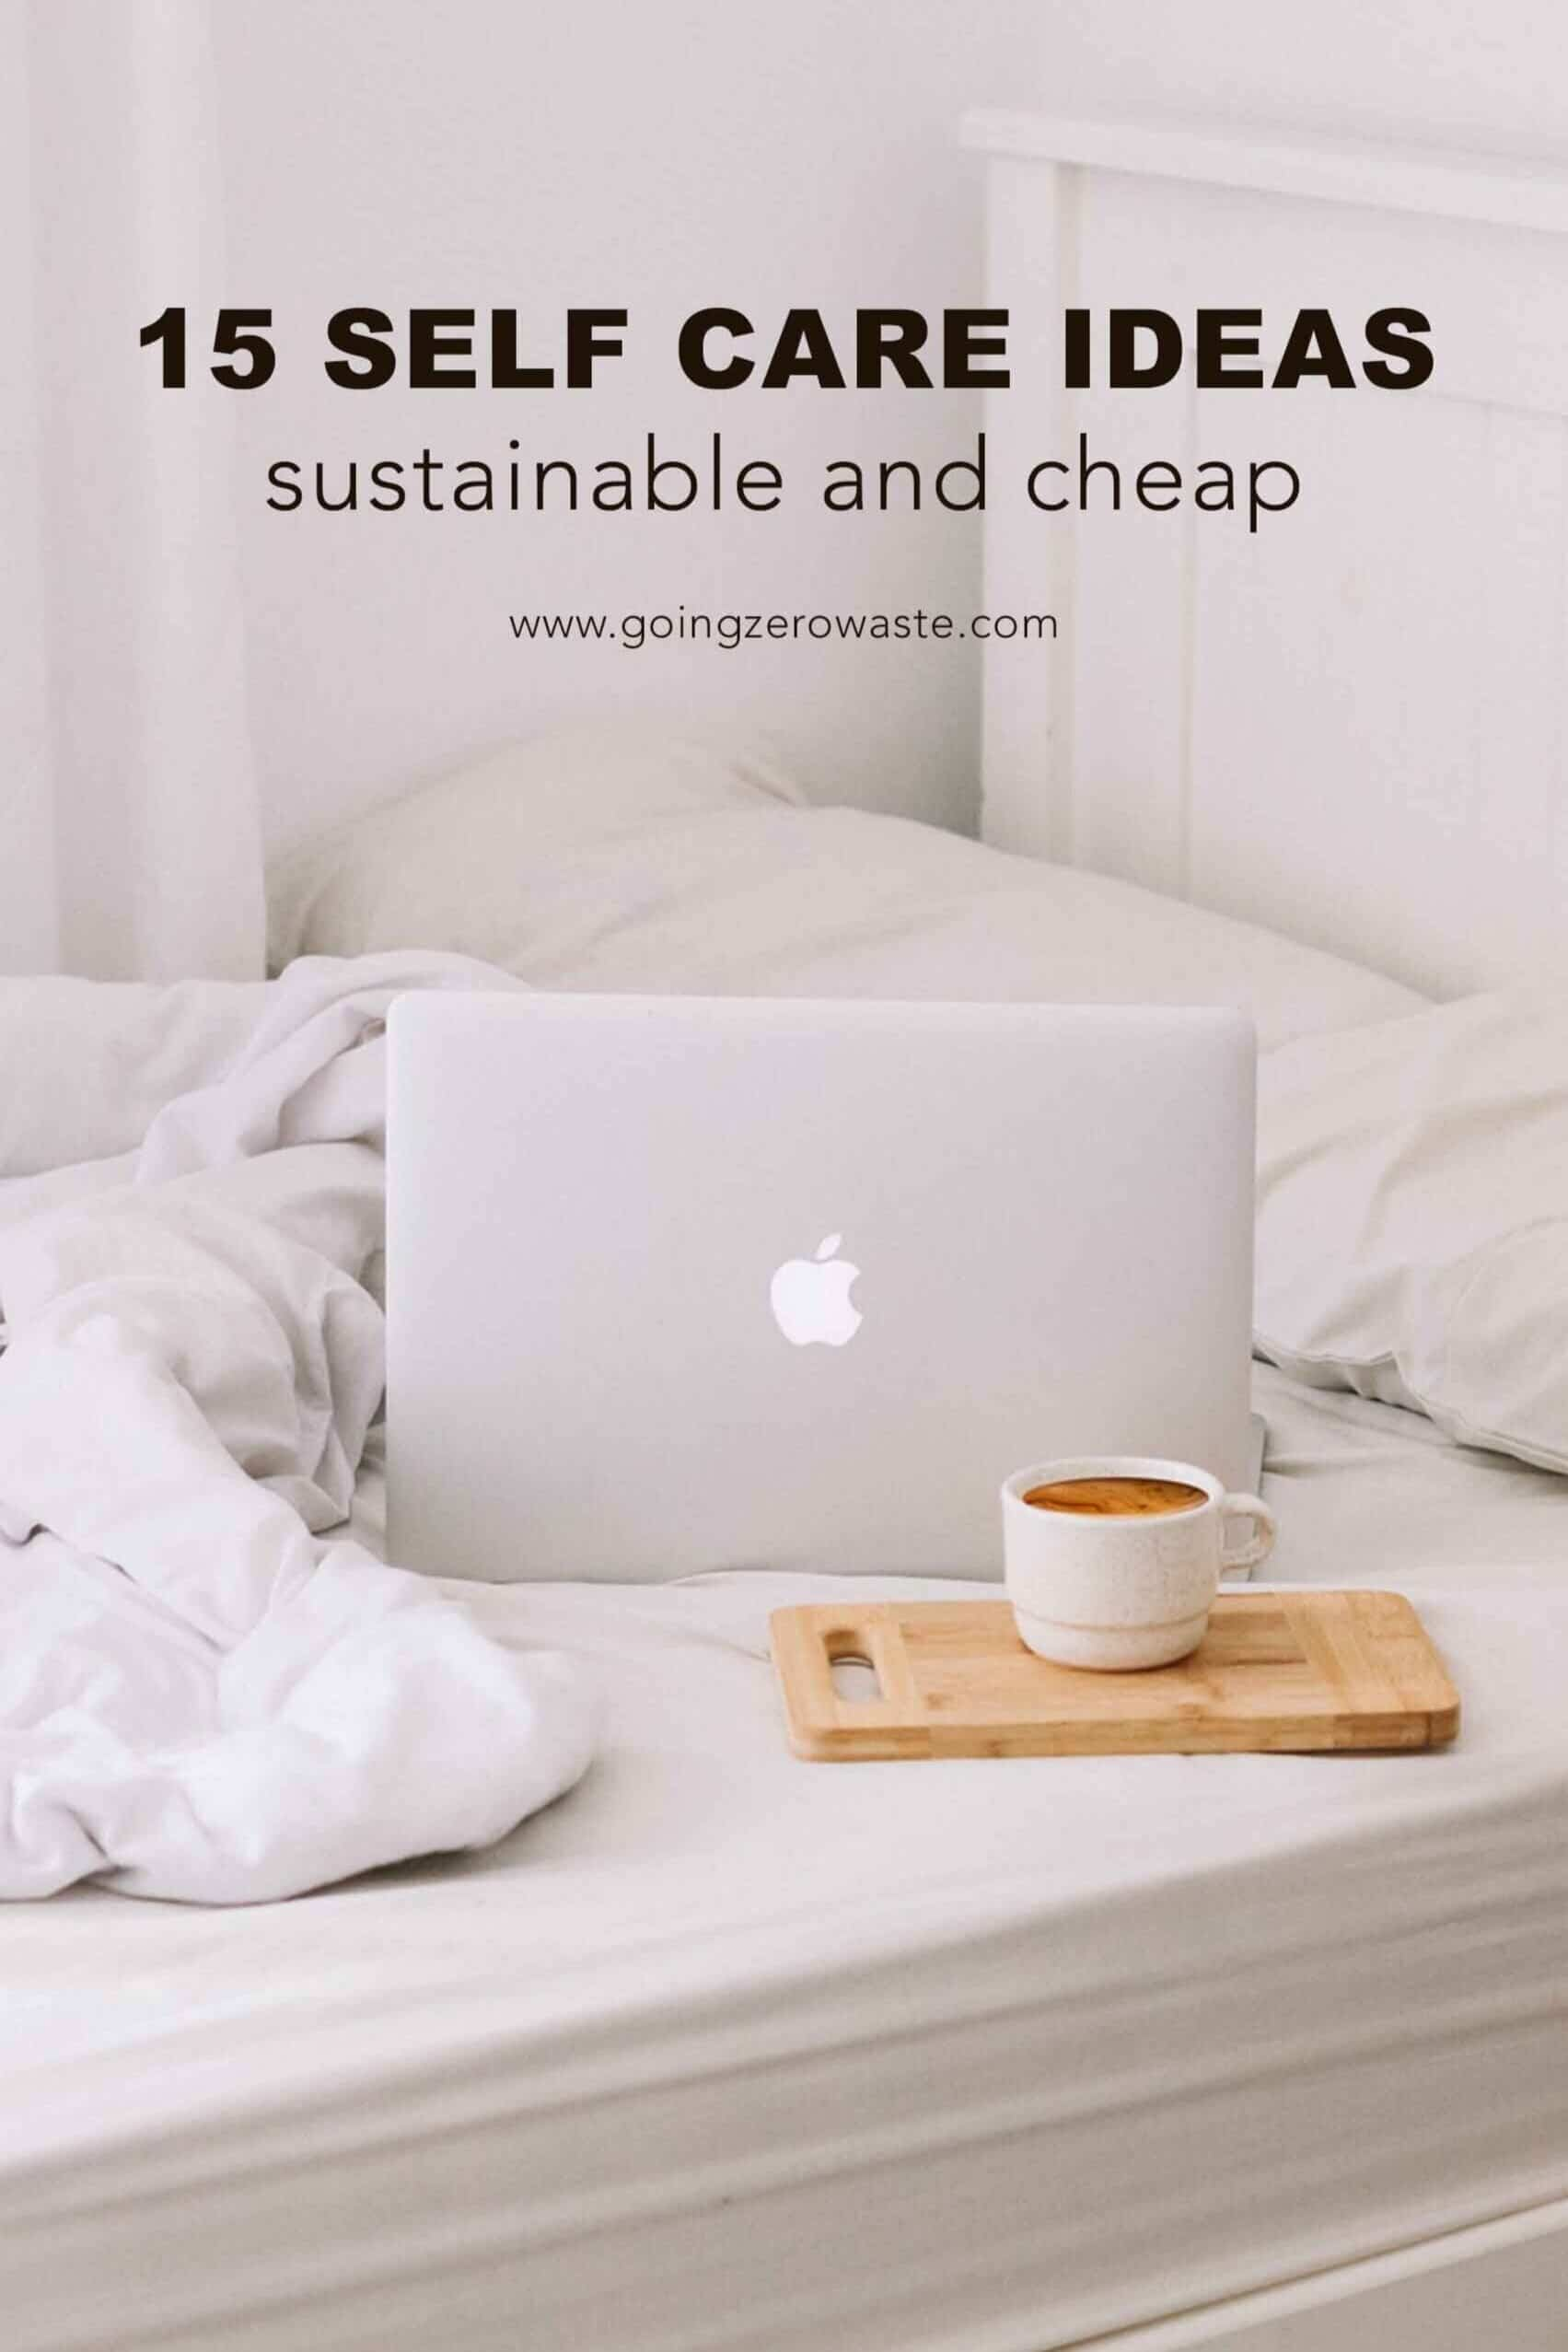 Sustainable and Cheap - 15 Self-Care Ideas